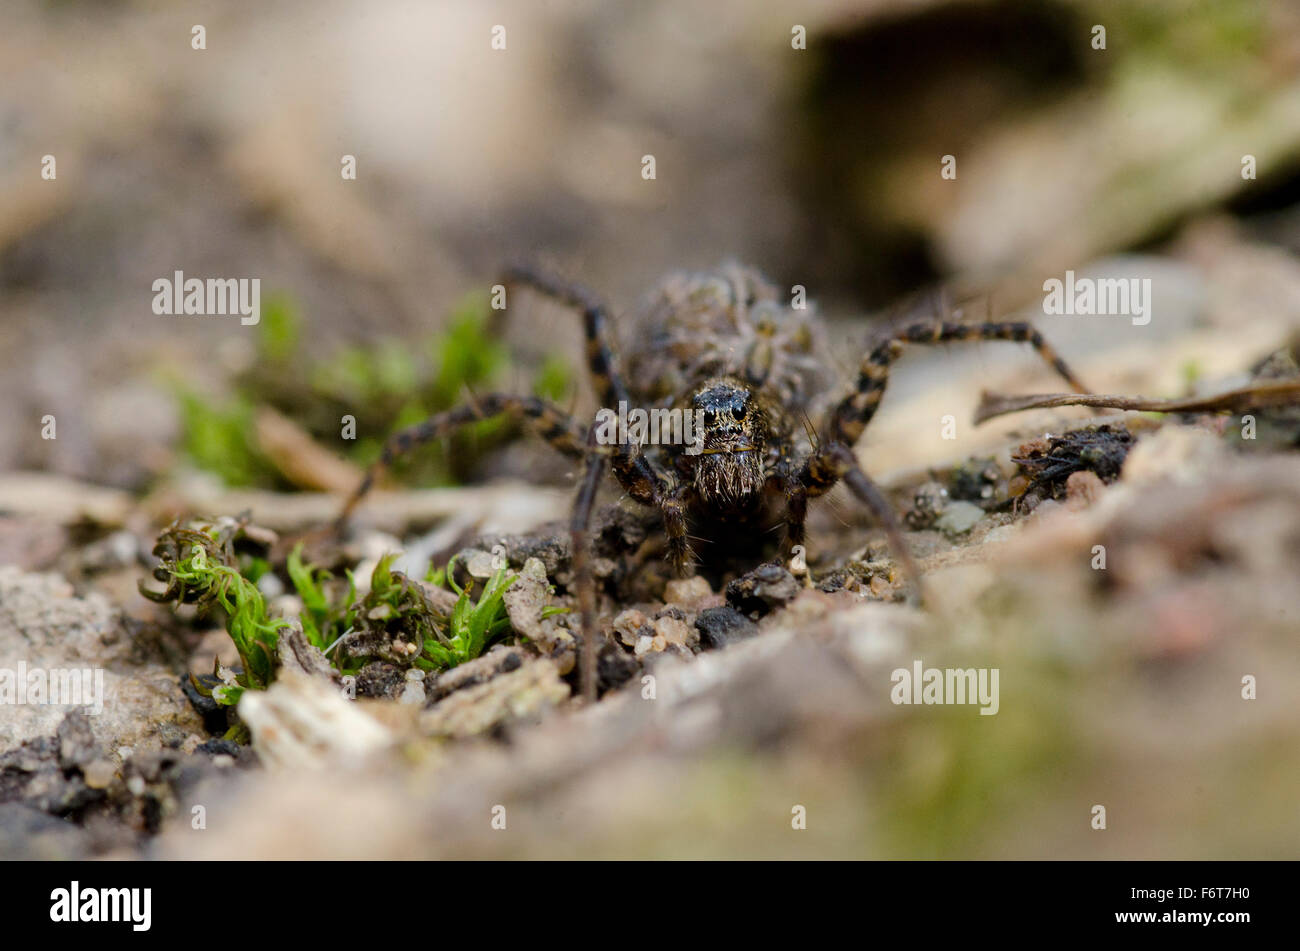 Wolf spider with young on her back - Stock Image